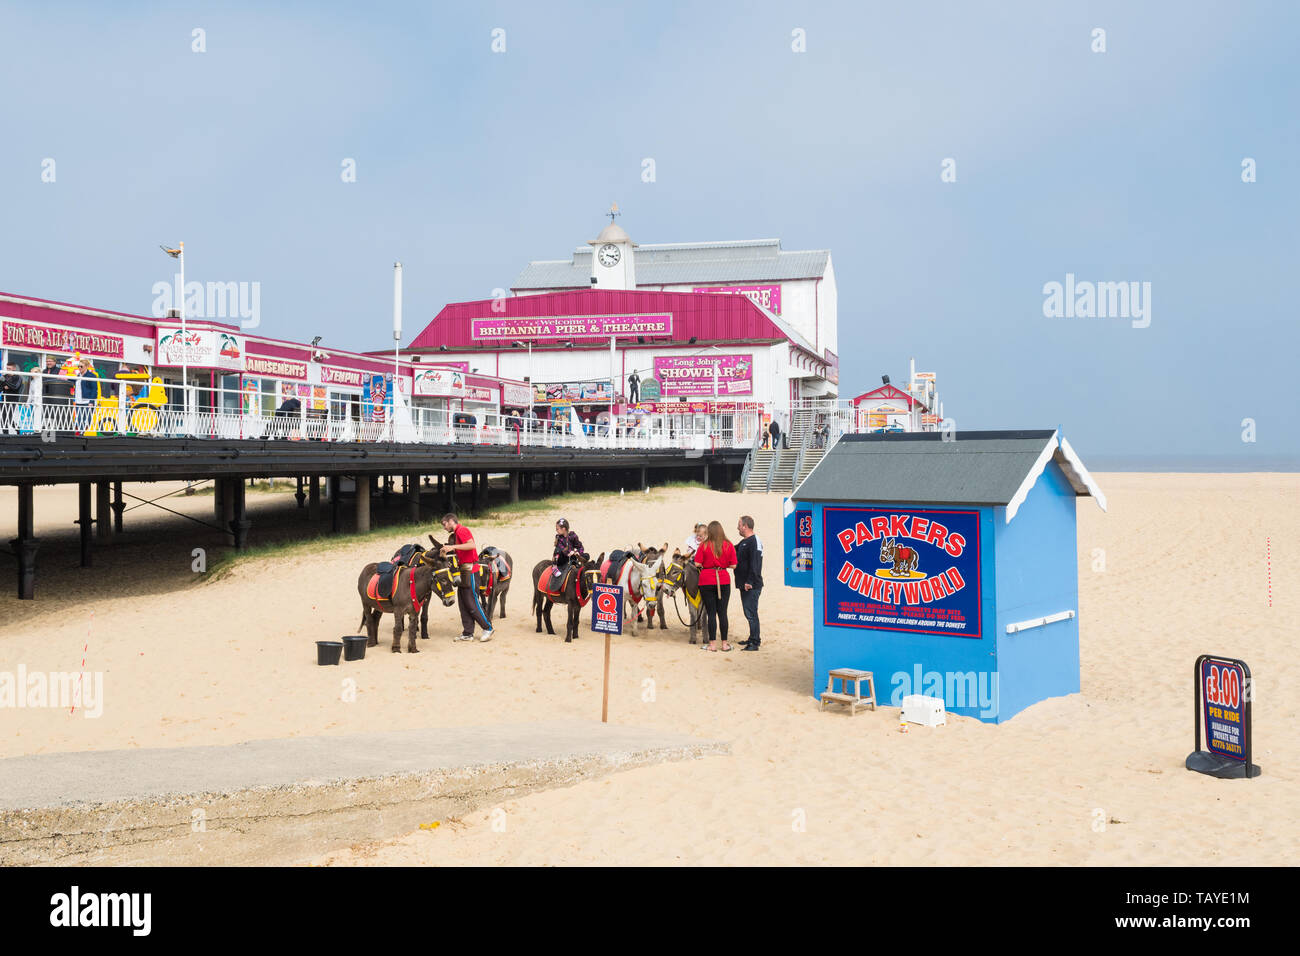 Great Yarmouth beach pier and donkeys - a traditional british seaside scene - Great Yarmouth, England, UK - Stock Image